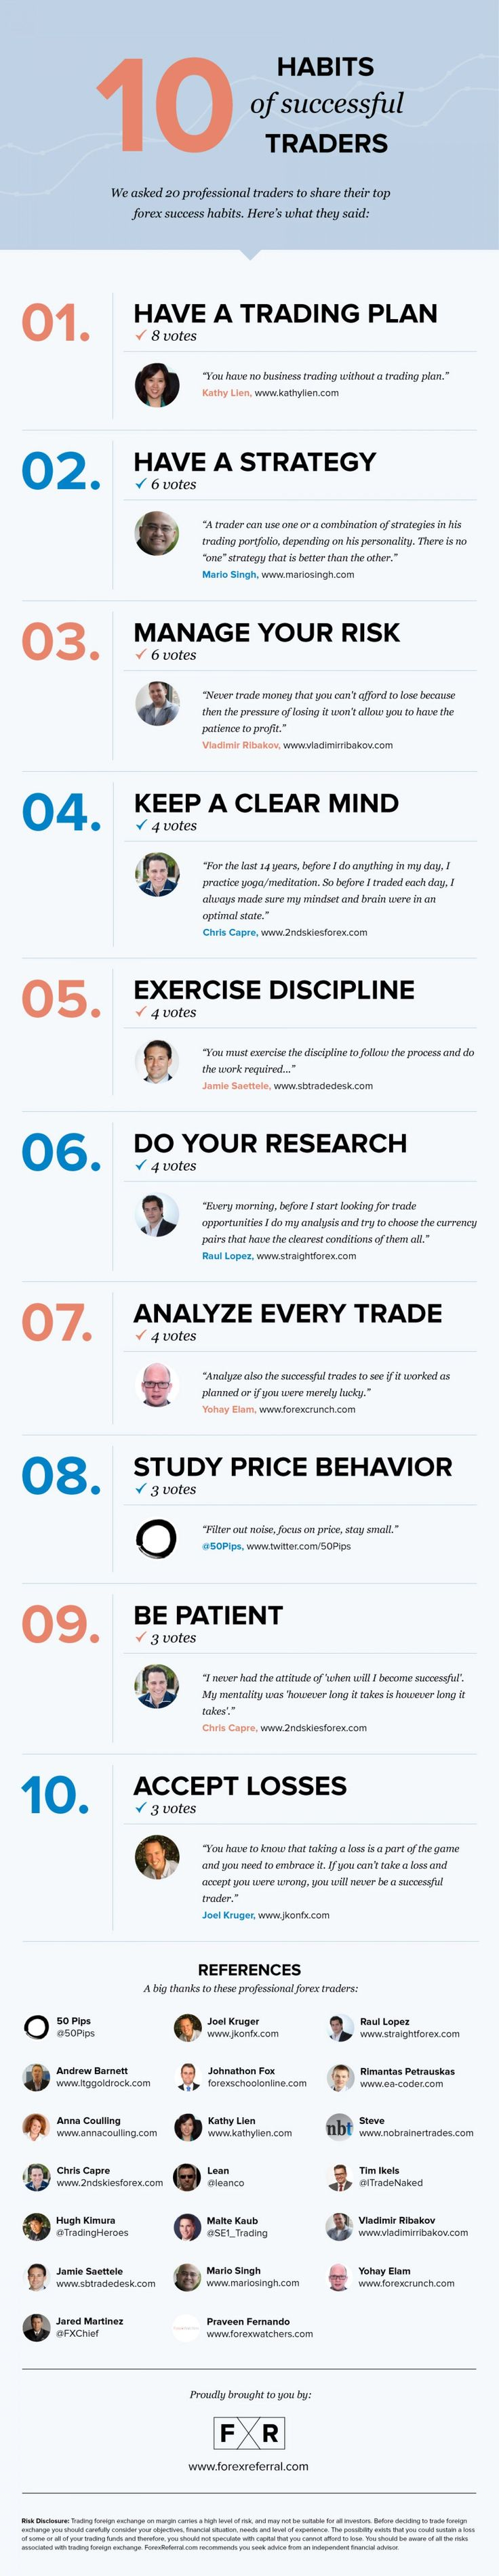 9 best trading tips images on pinterest investing finance and top 10 habits of successful traders infographic theory or practice it is important to make money online we argue that practice should be based on theory fandeluxe Gallery